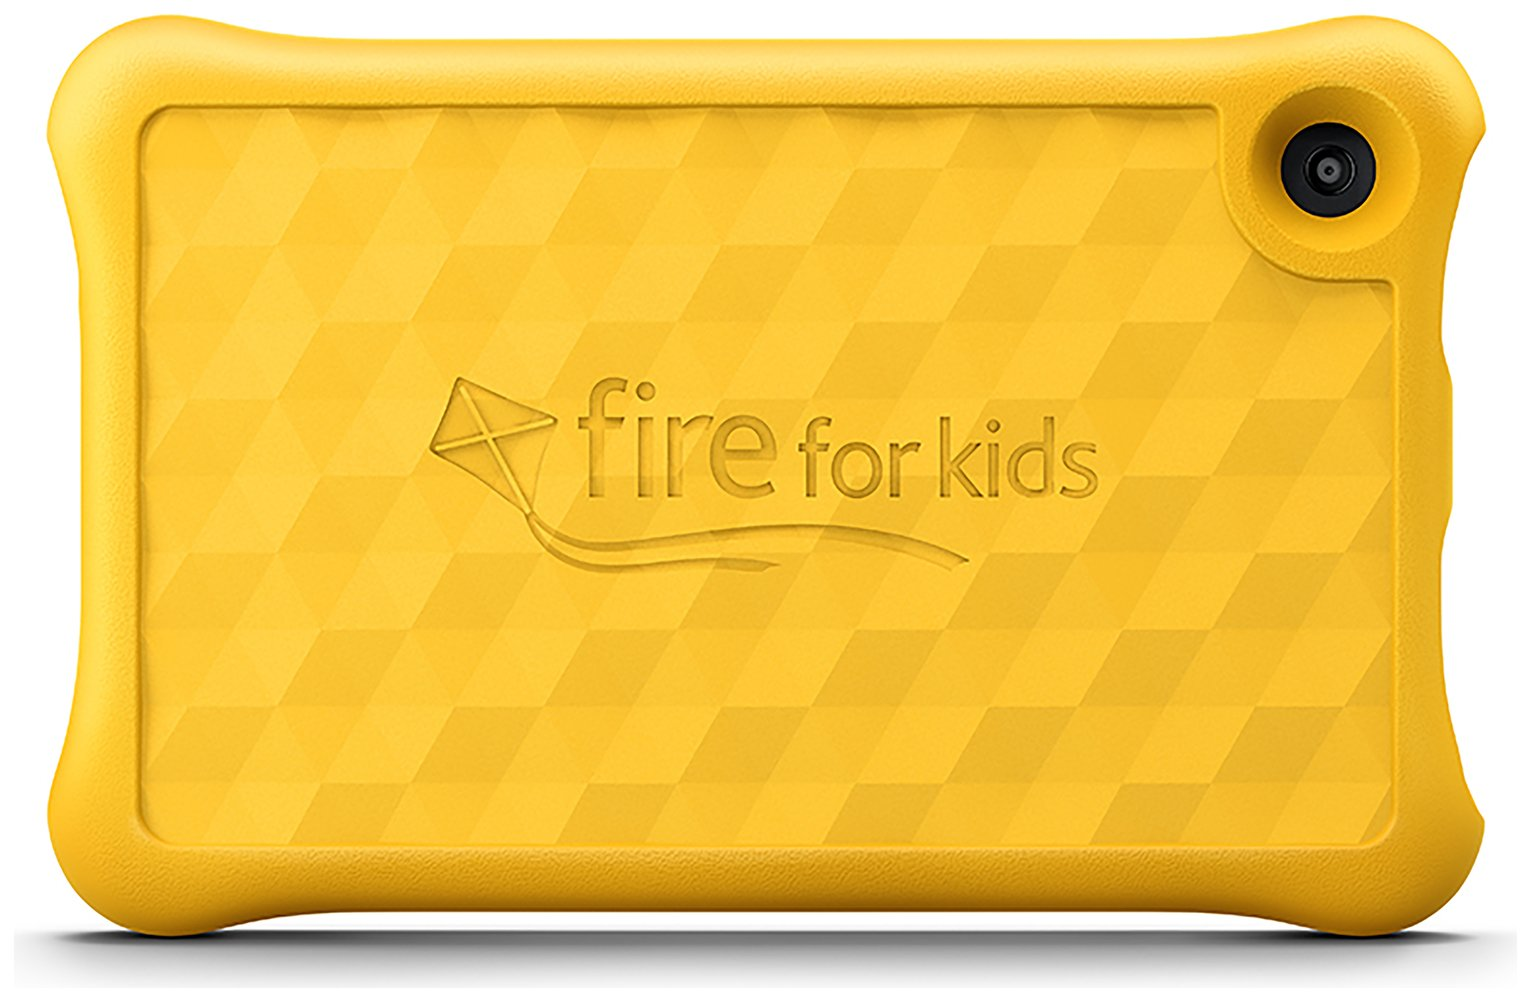 Amazon Fire 7 2017 Bumper Case - Yellow